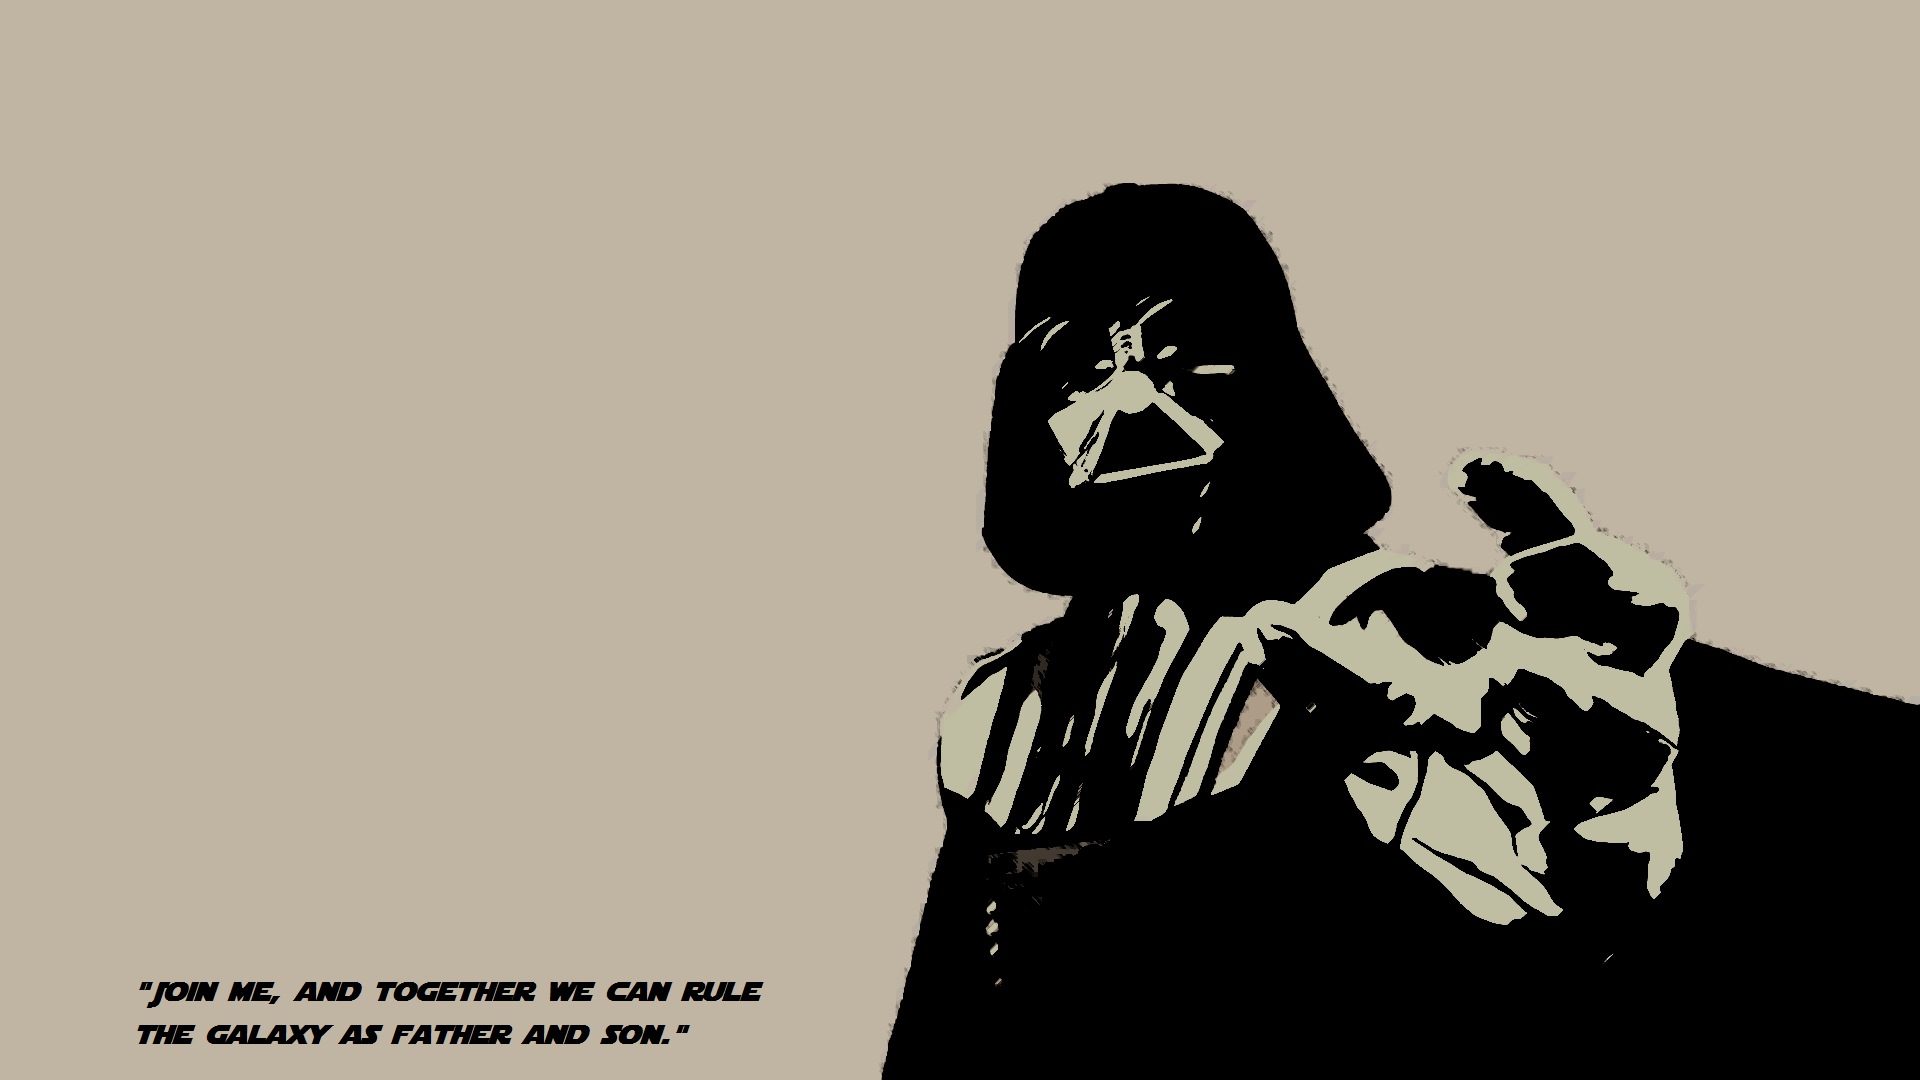 Sons Of Anarchy Quote Wallpaper Desktop Darth Vader Wallpapers Pixelstalk Net